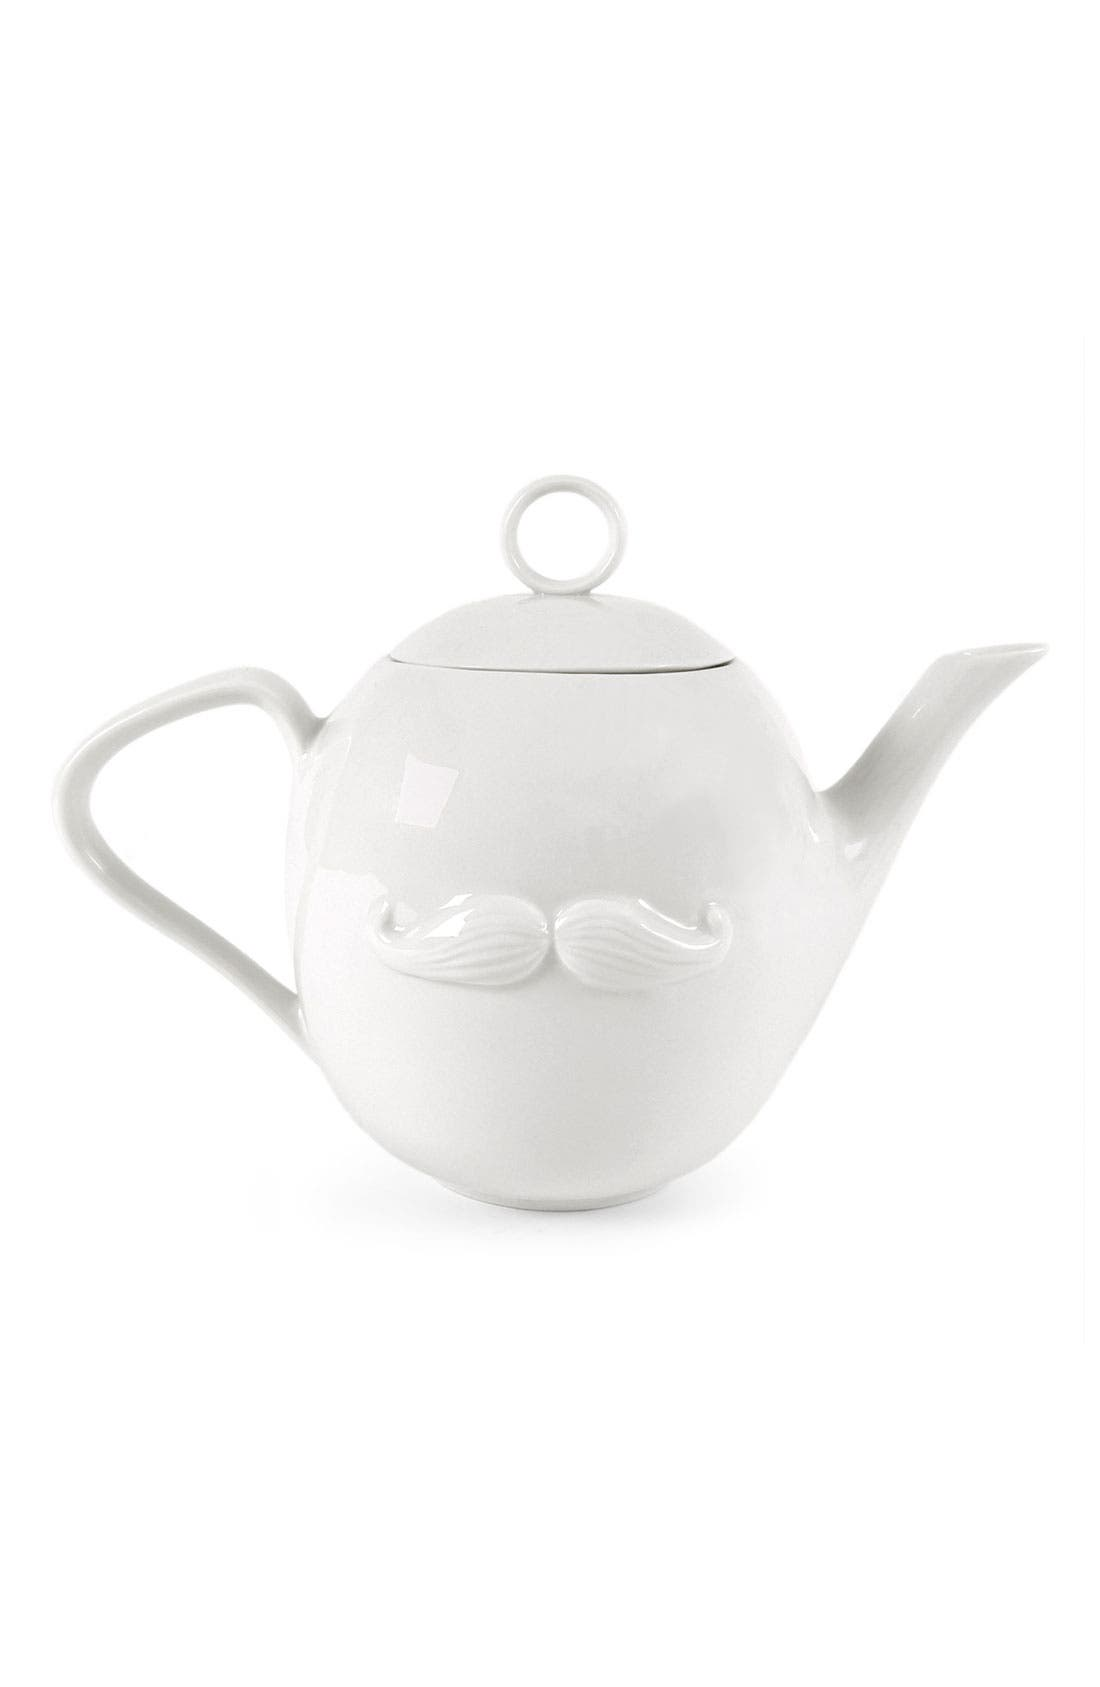 Alternate Image 1 Selected - Jonathan Adler 'Muse' Porcelain Teapot